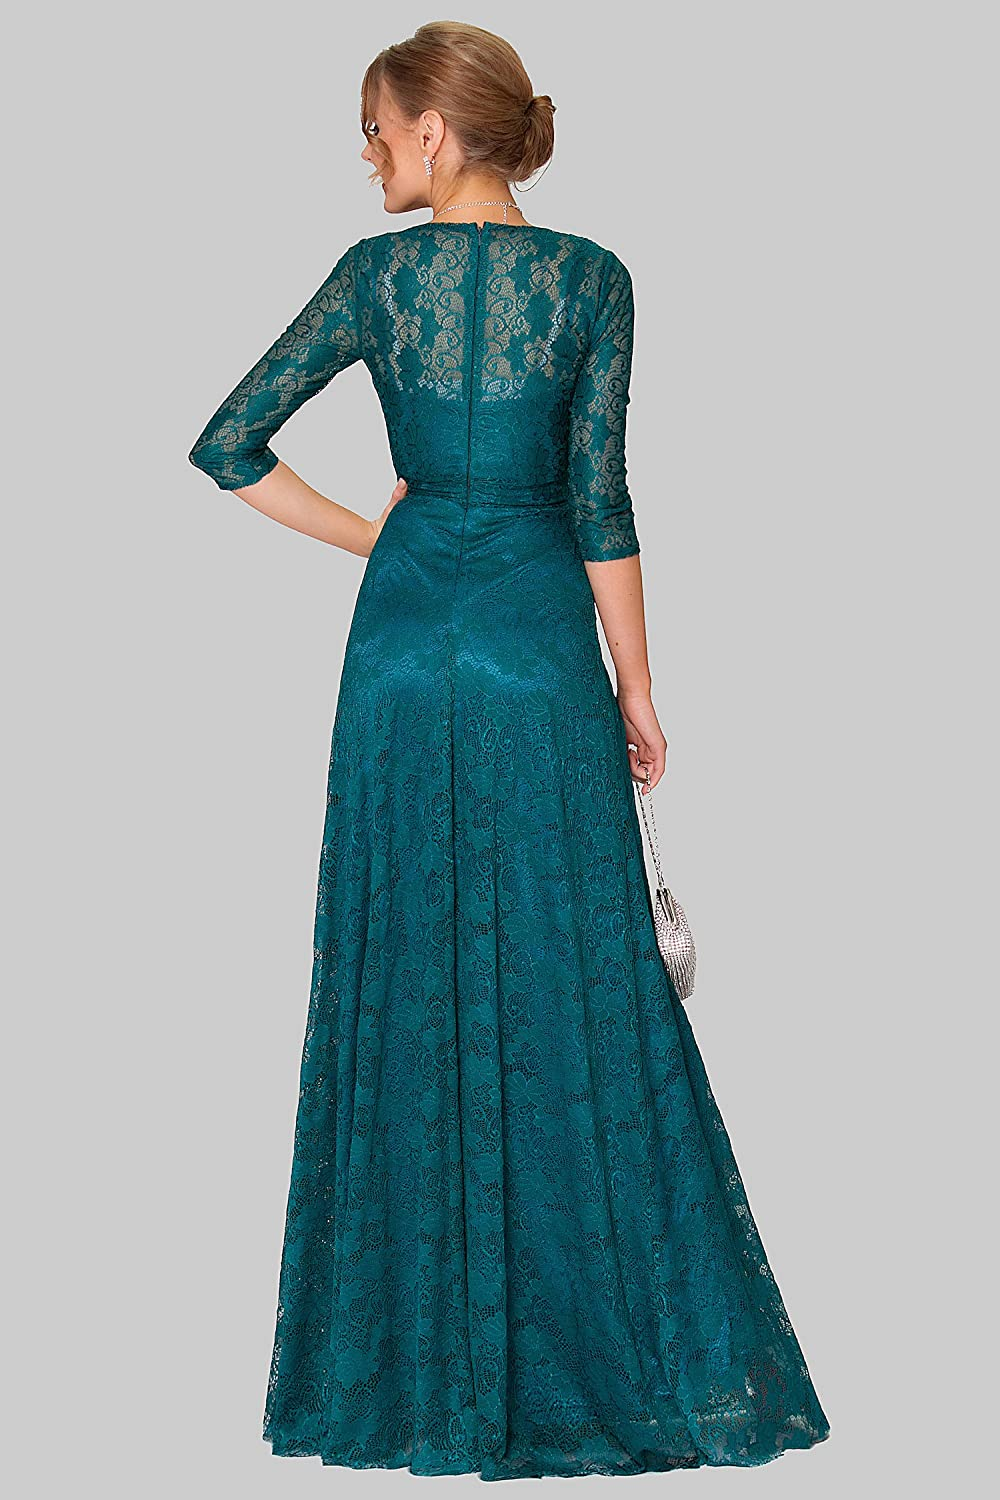 SEXYHER Charming DarkTeal Lace Covered Long Evening Bridesmaid Dress - EDYP1002